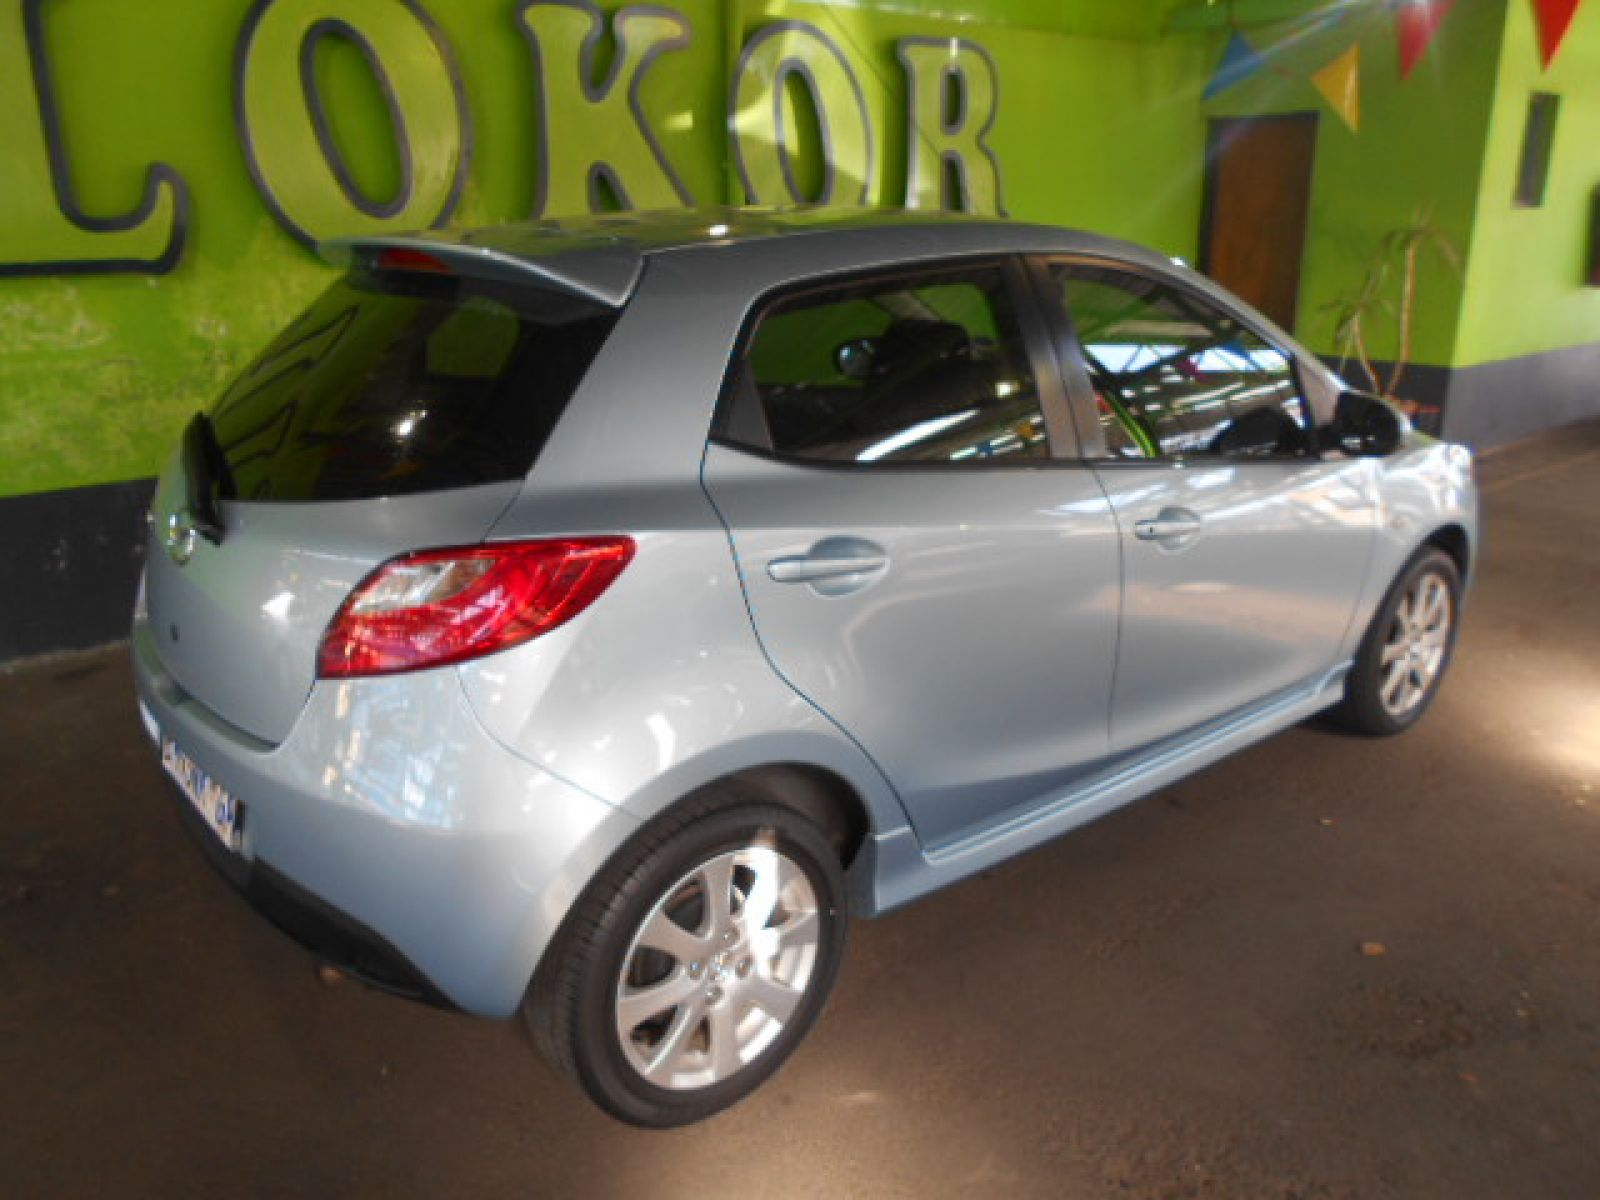 2011 Mazda 2 R 129 990 For Sale Kilokor Motors